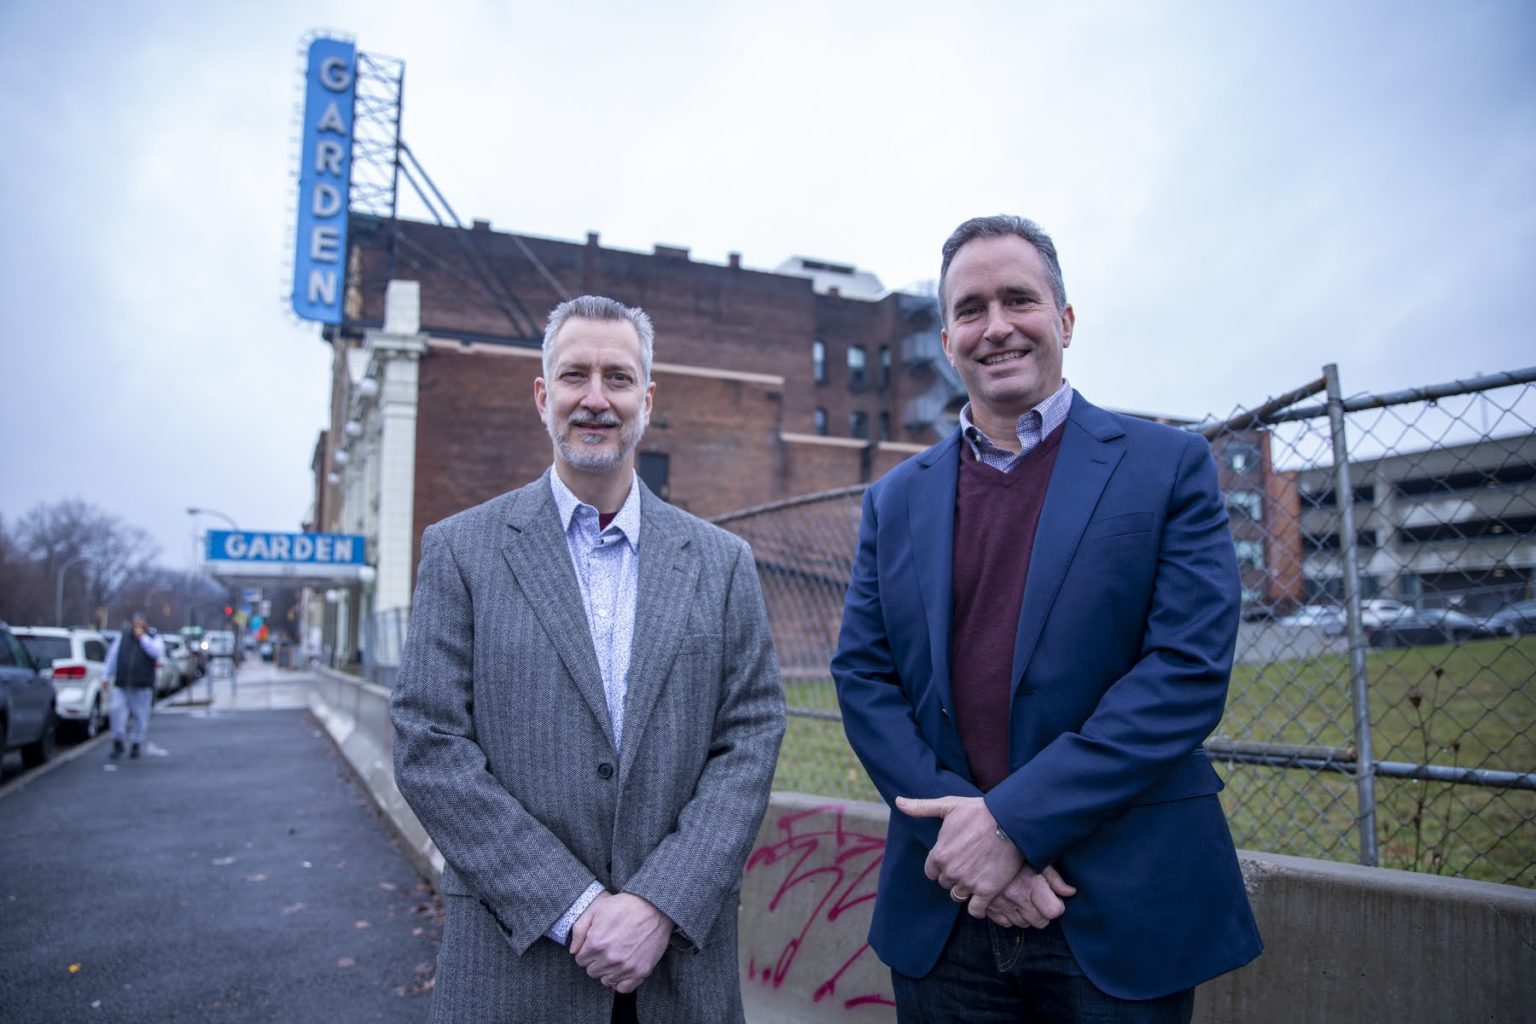 In limbo no more: New construction to begin on remaining lots of Garden Theater block